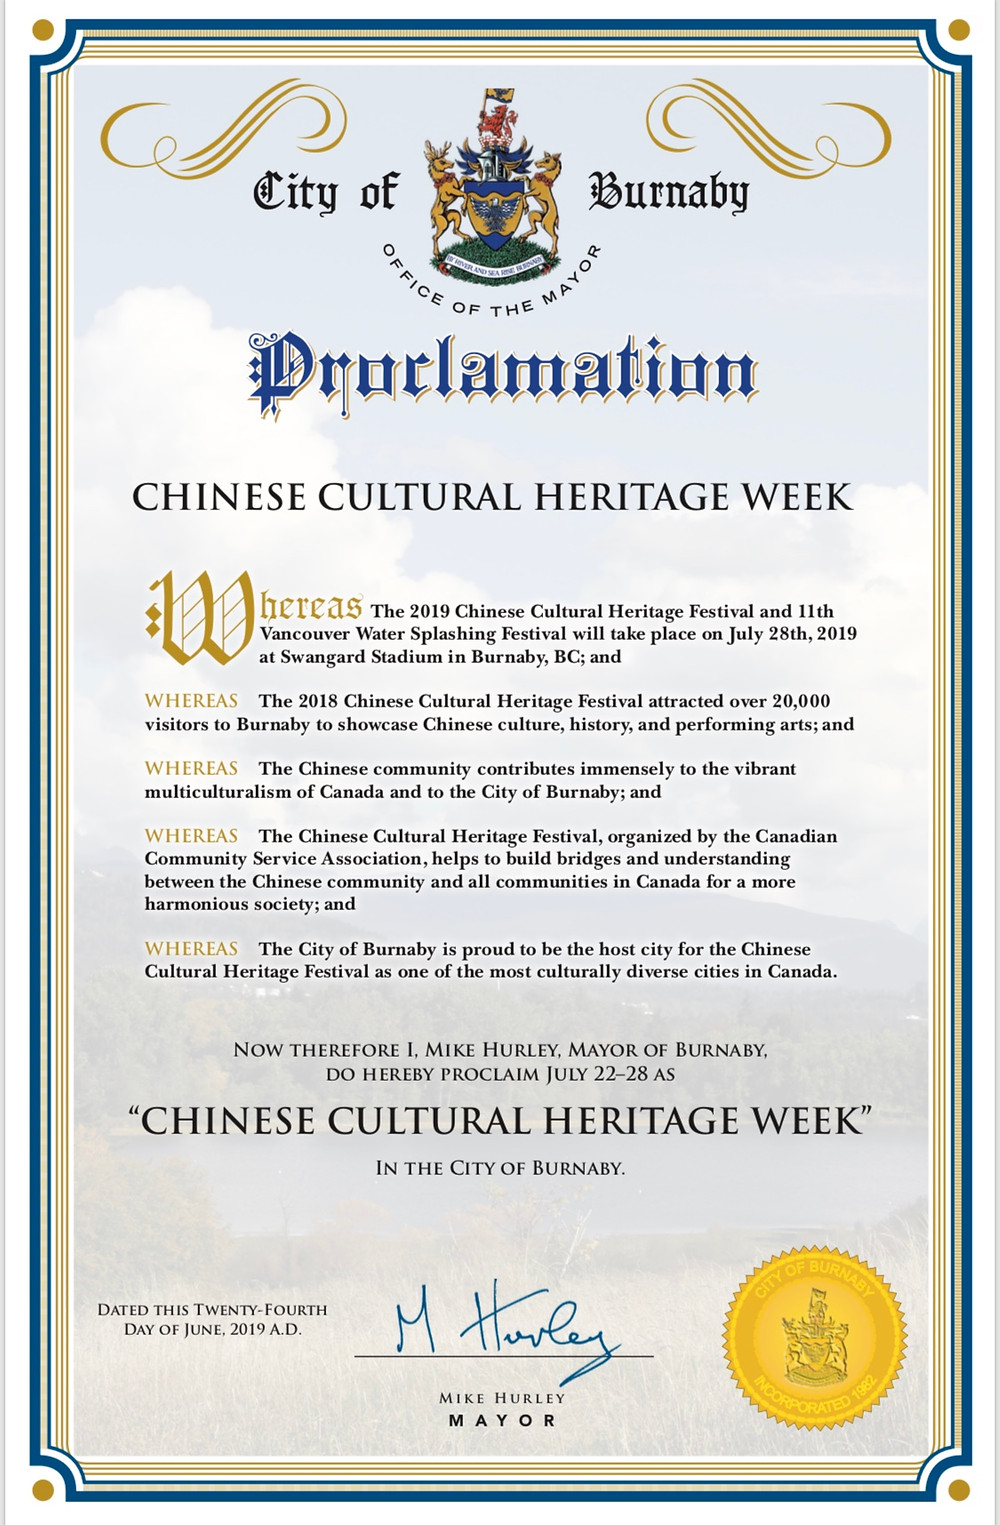 Proclamation Certificate of Chinese Cultural Heritage Week 2019